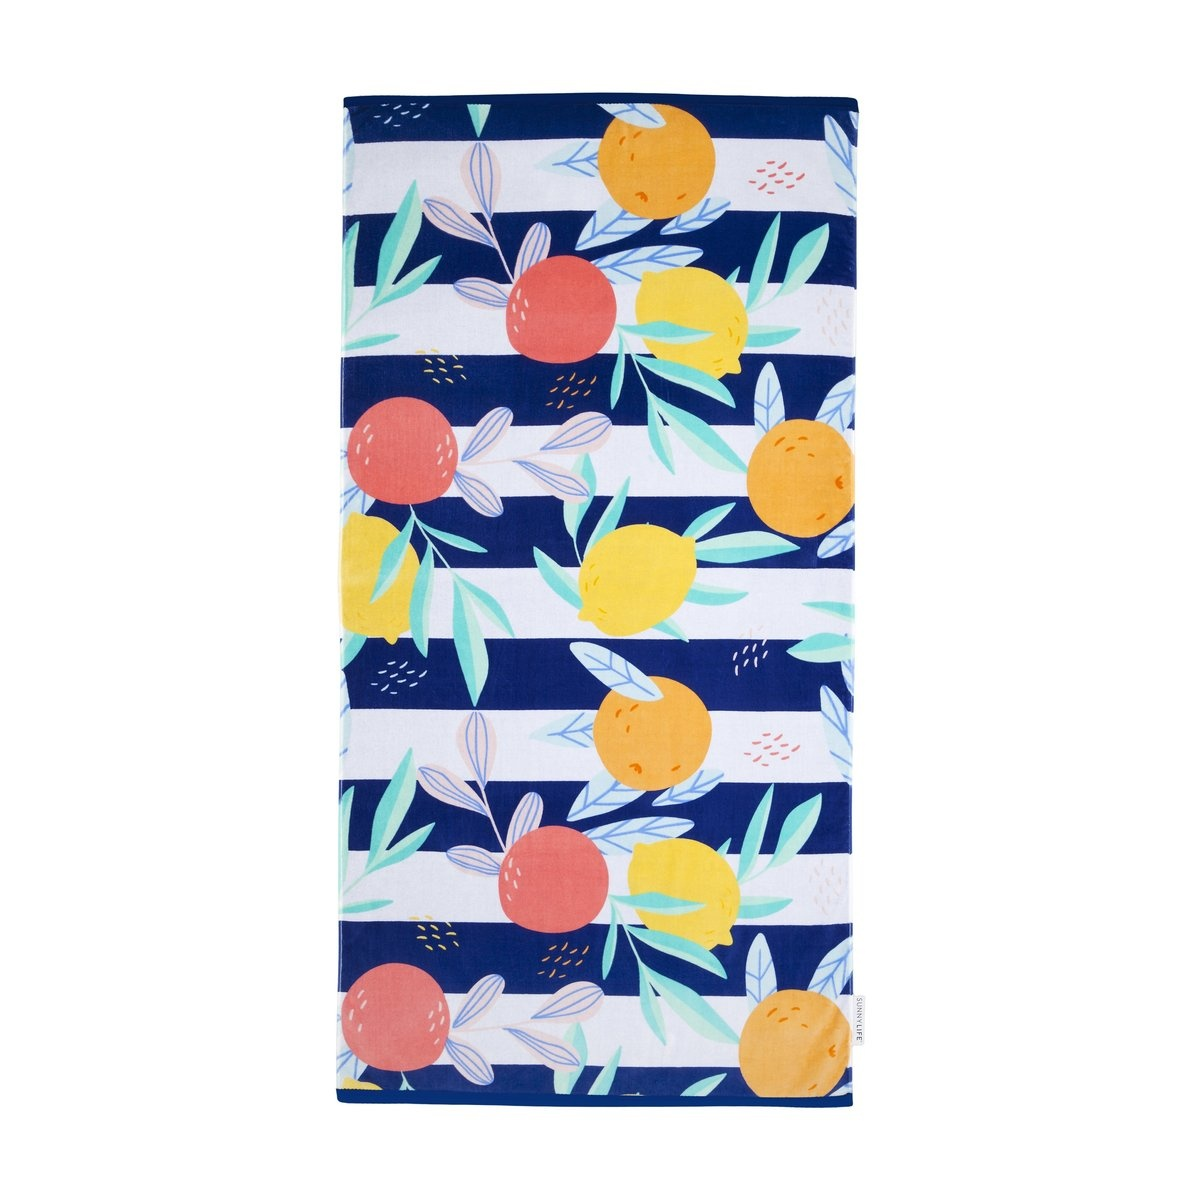 Sunny Life Luxe Towel Dolce Vita